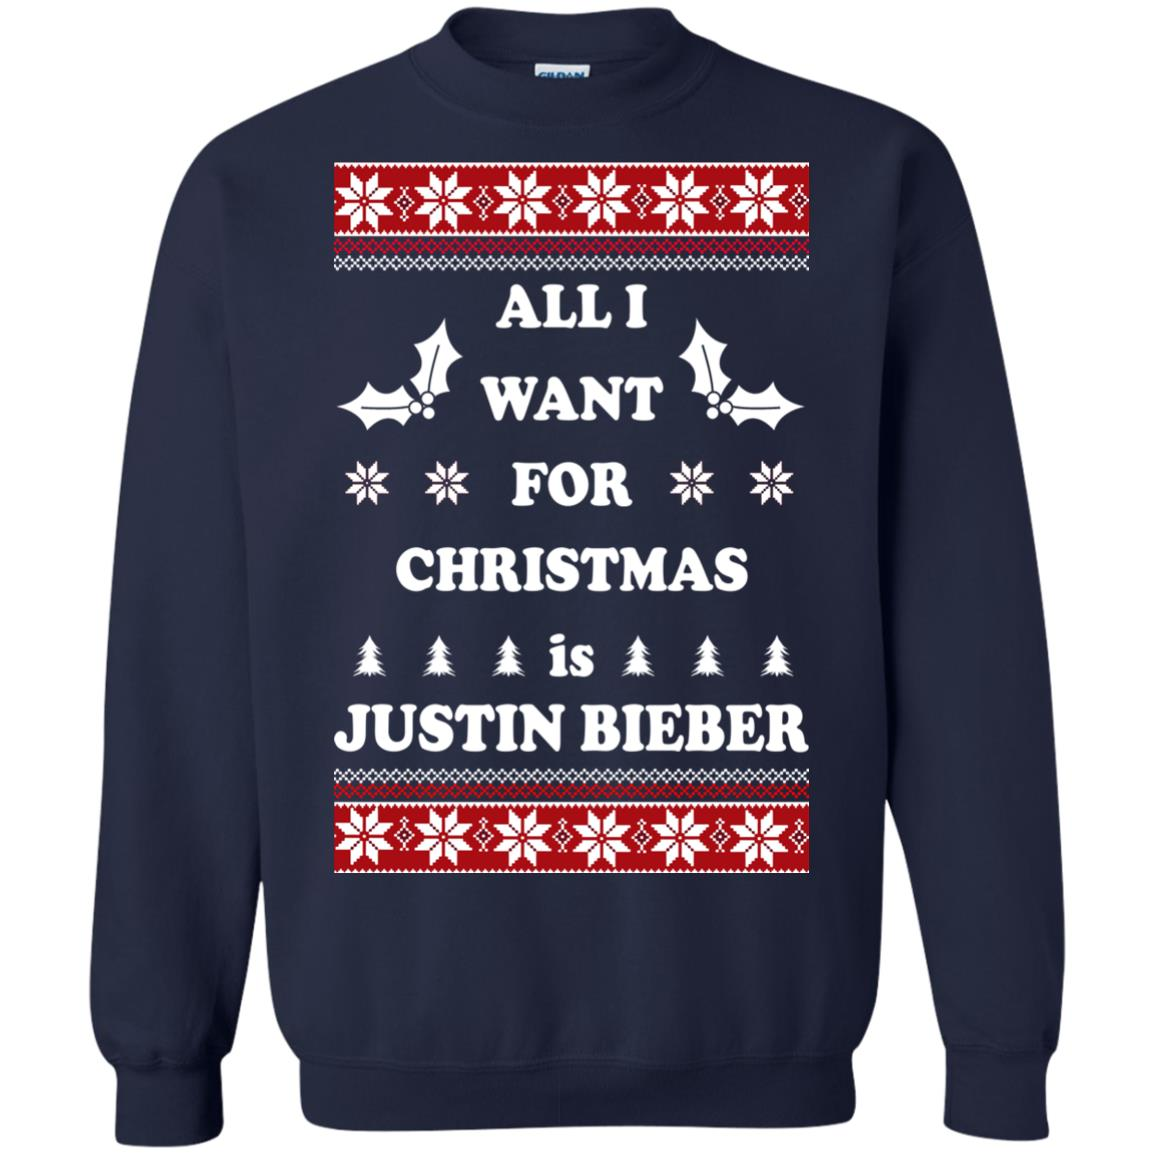 All I want for Christmas is Justin Bieber Ugly Sweater, Long Sleeve ...